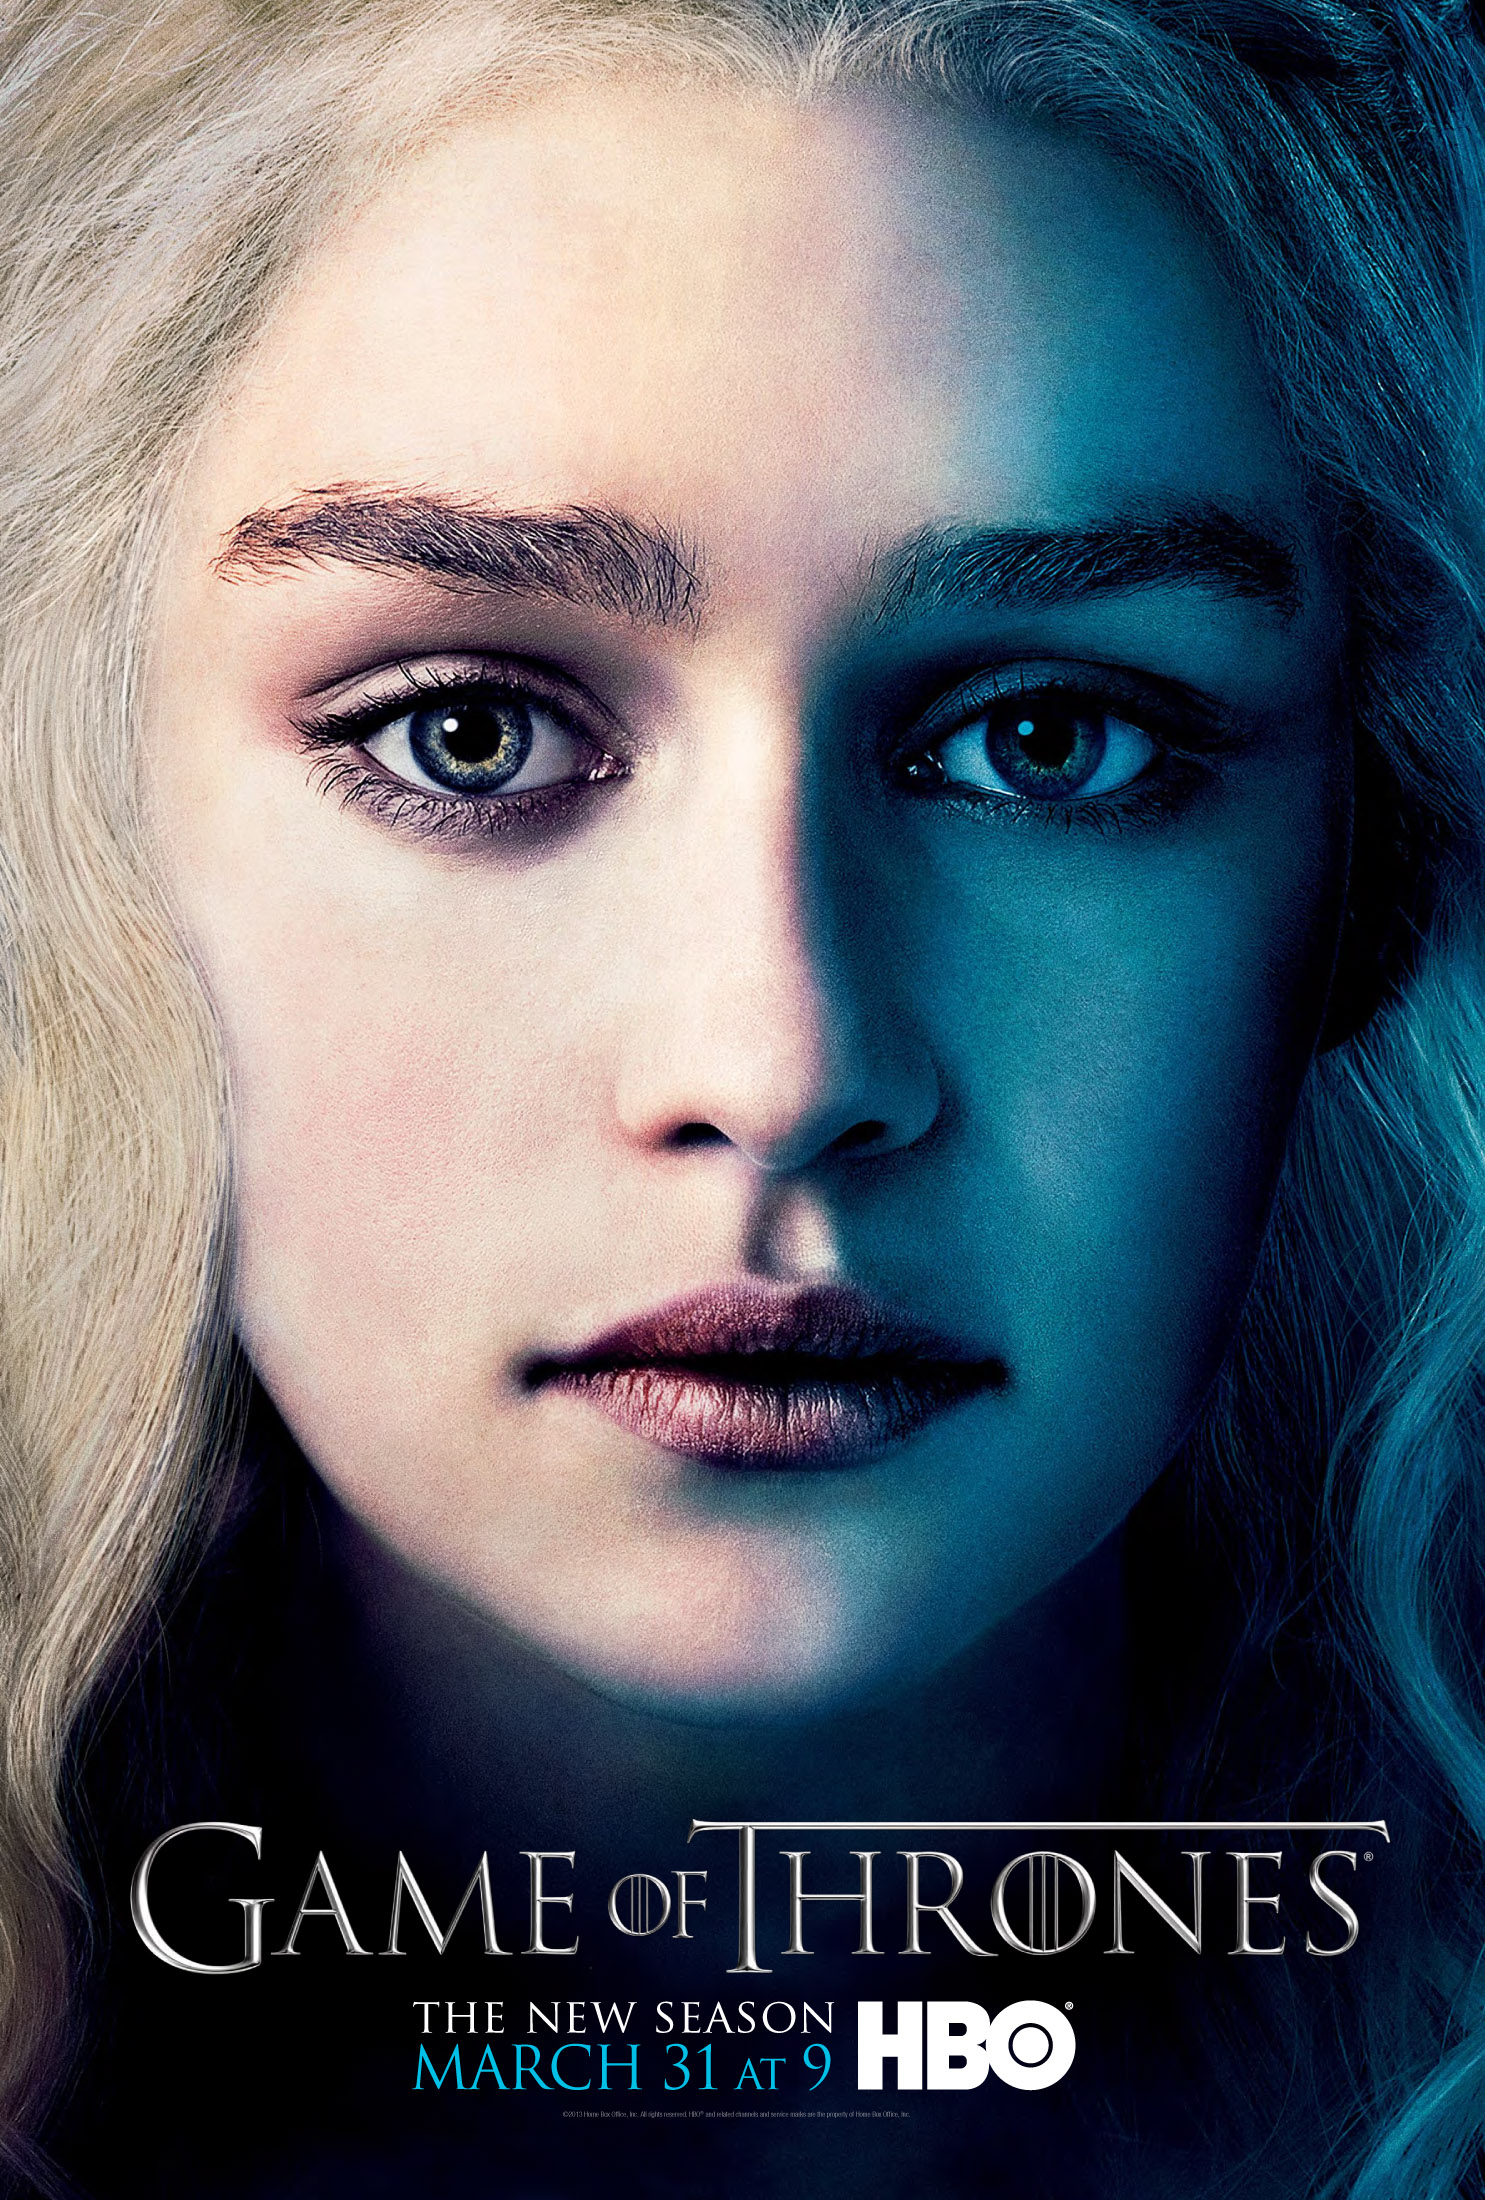 Daenerys Targaryen Game of Thrones season three poster.